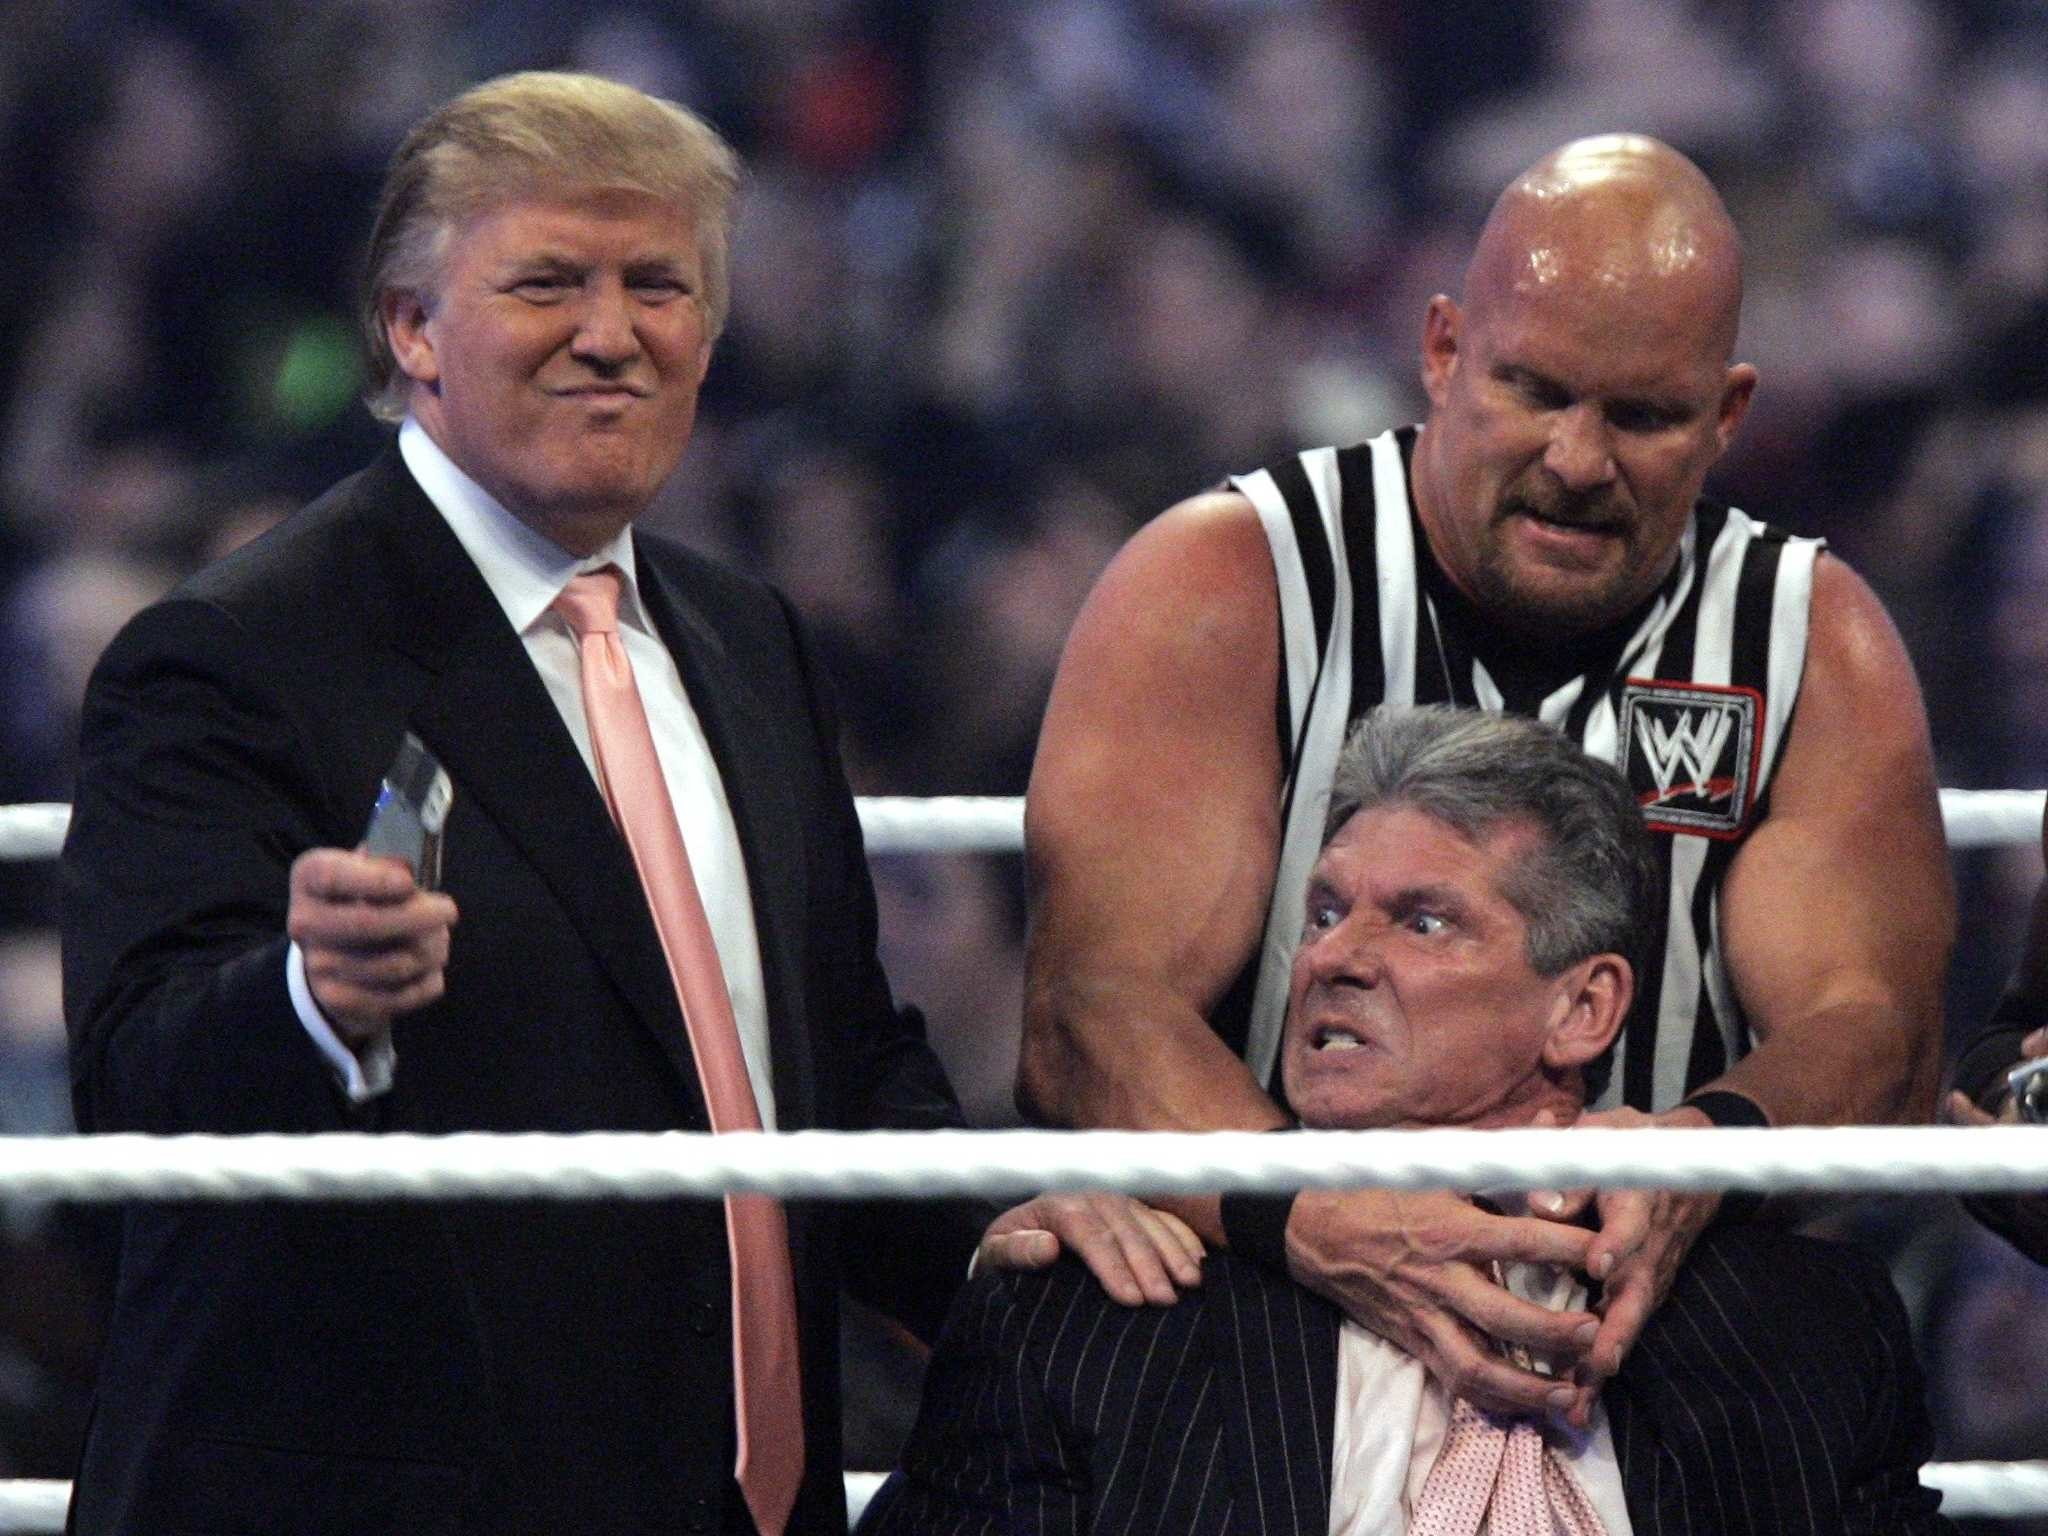 Eli Roth Compares Donald Trump and His Inner Circle to WWF Wrestlers |  IndieWire